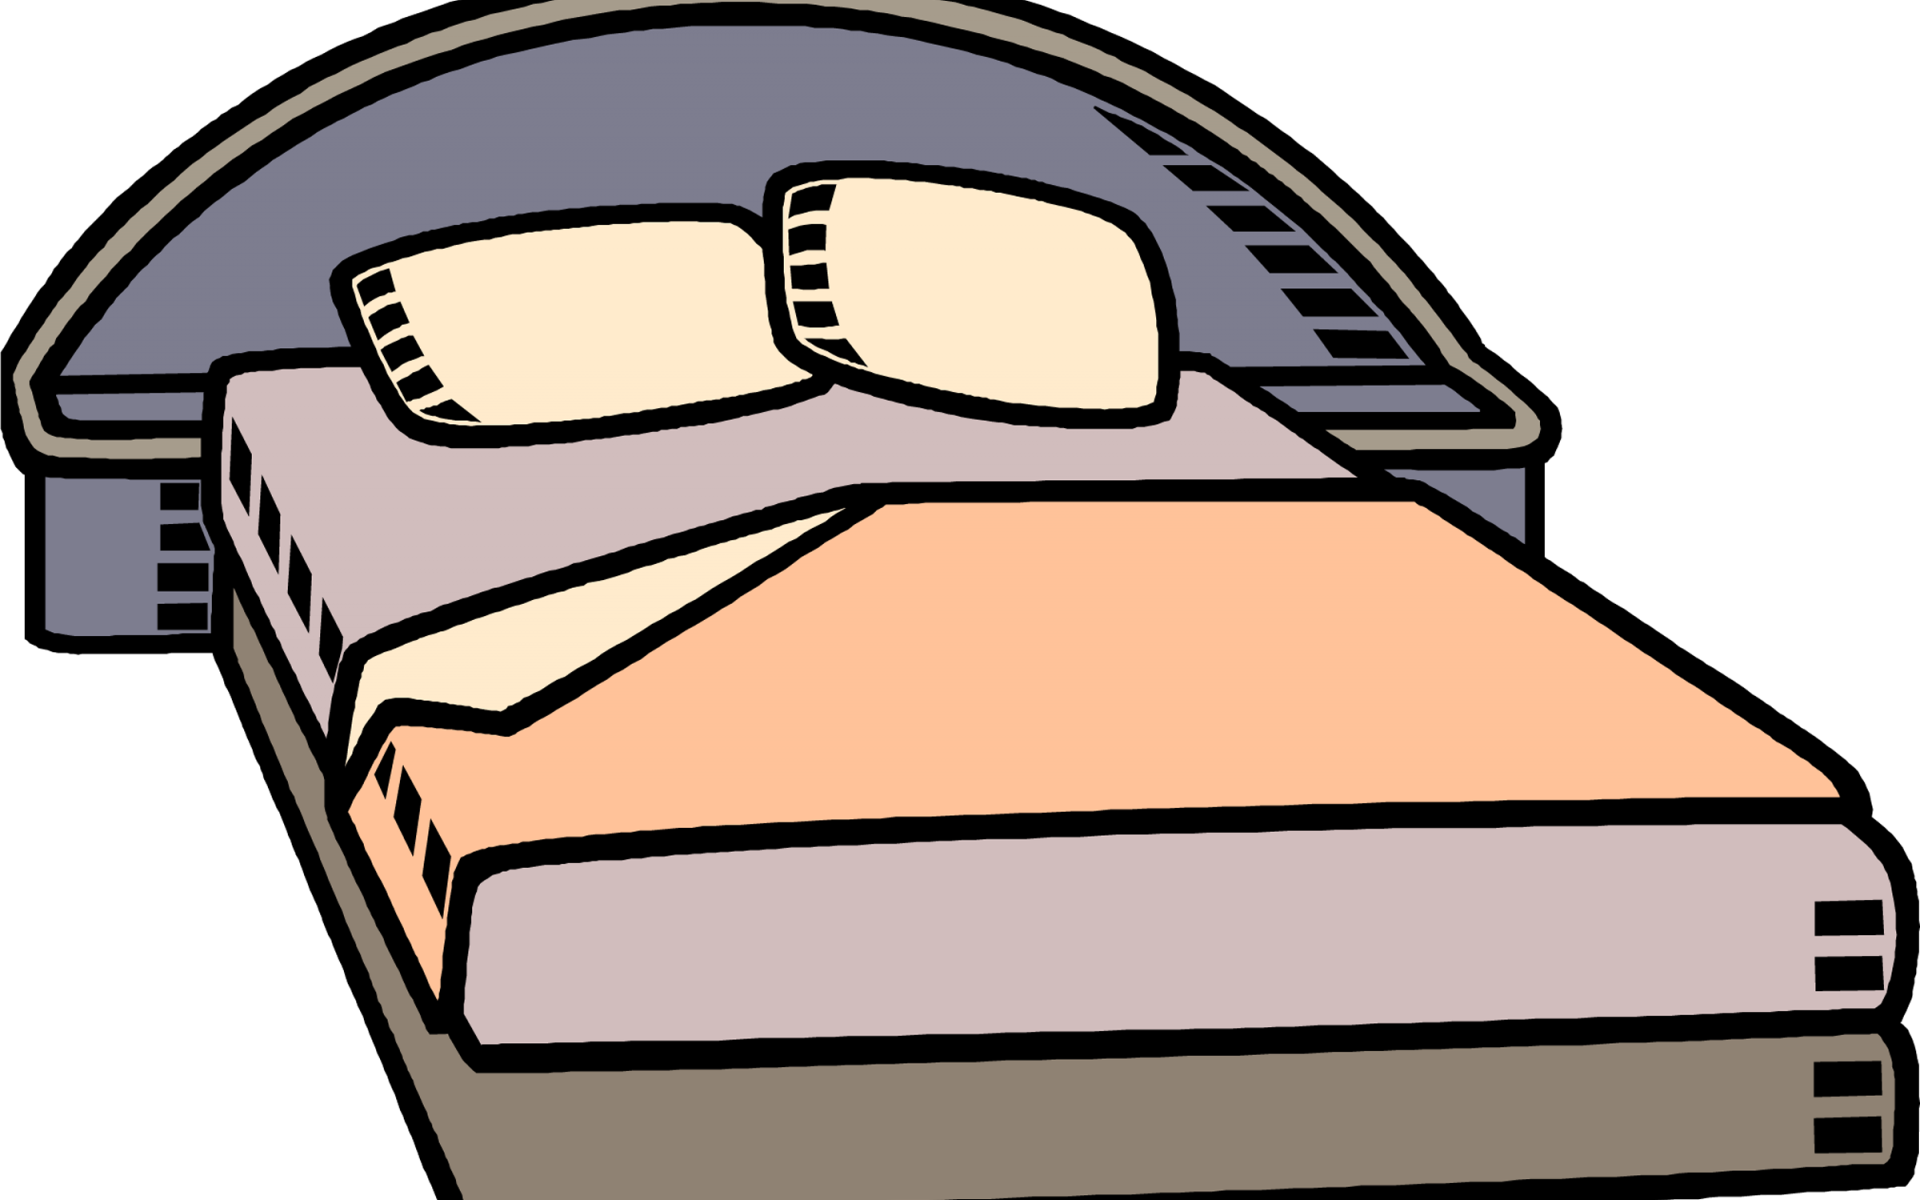 Clipart bed animated. Make x carwad net